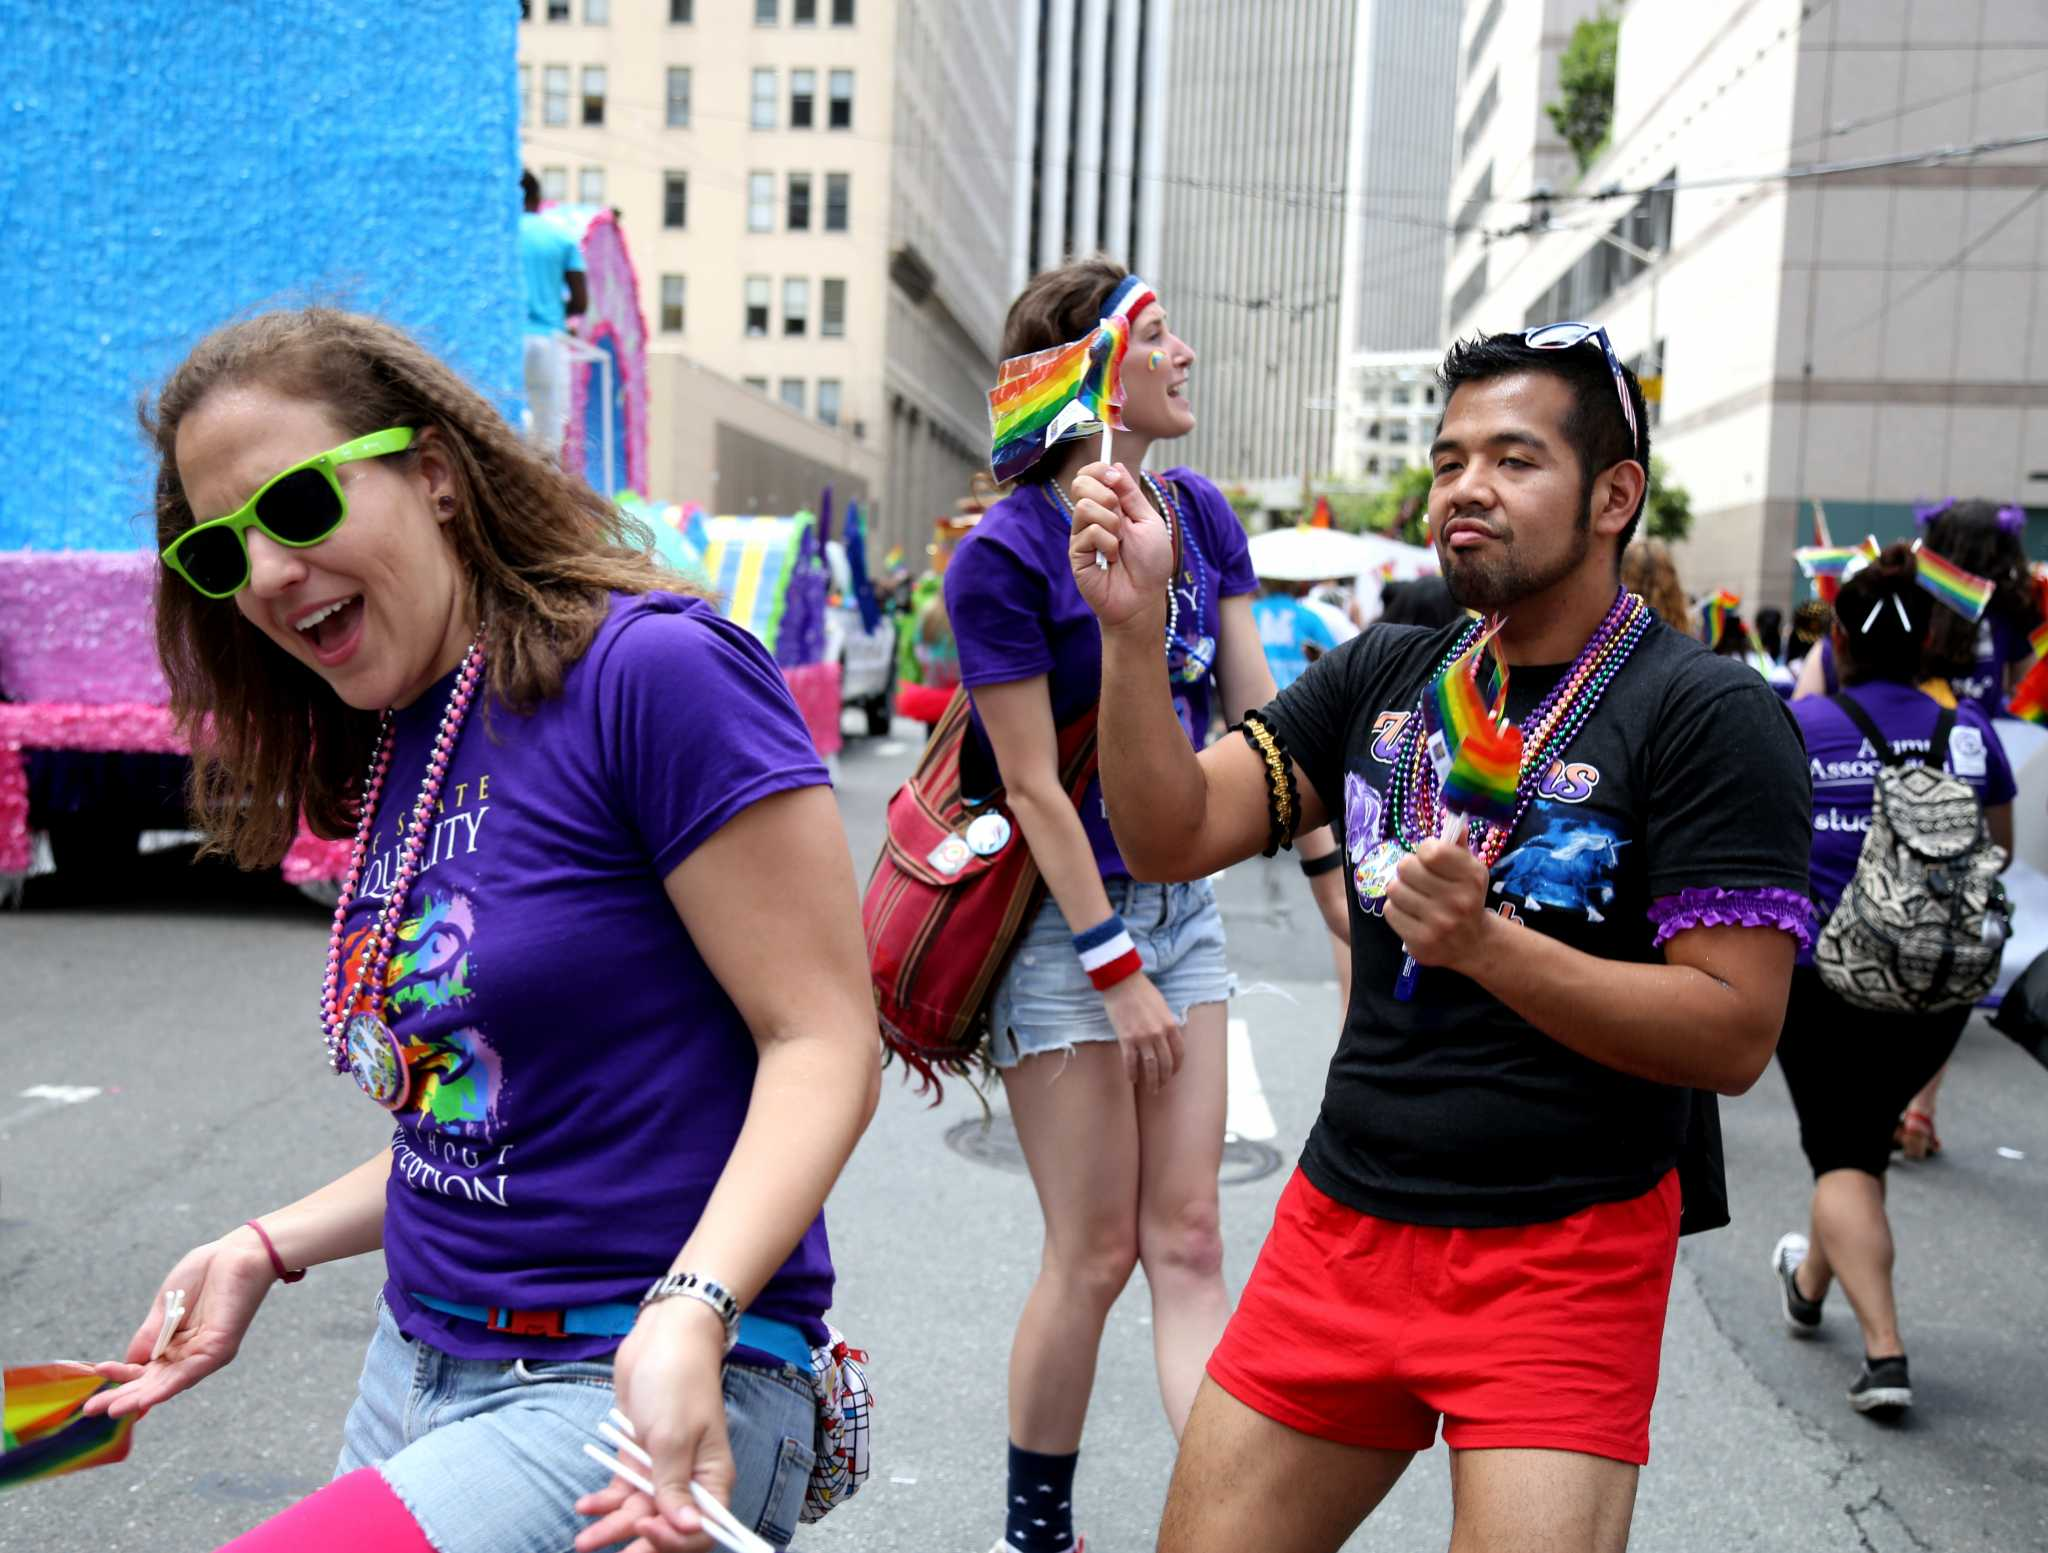 SF State students dance while waiting to participate in the Pride Parade in the Civic Center San Francisco on Sunday, June 28, 2015 (Xpress/Emma Chiang)